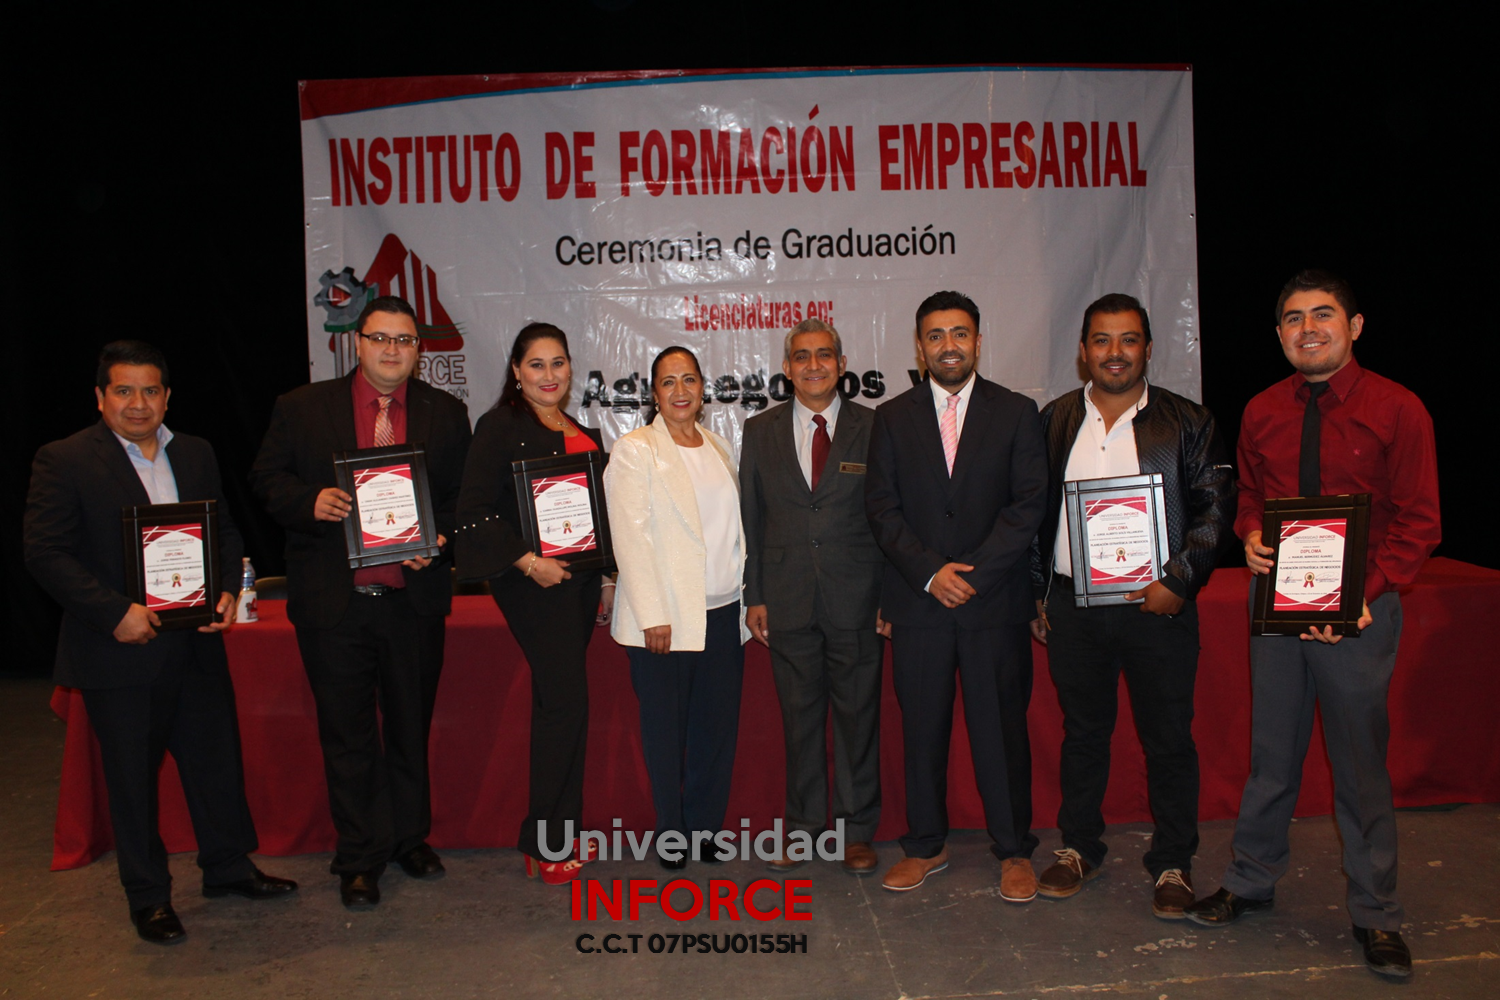 universidad-inforce-comitan-diplomado-en-negocios-graduacion-2018-2.png